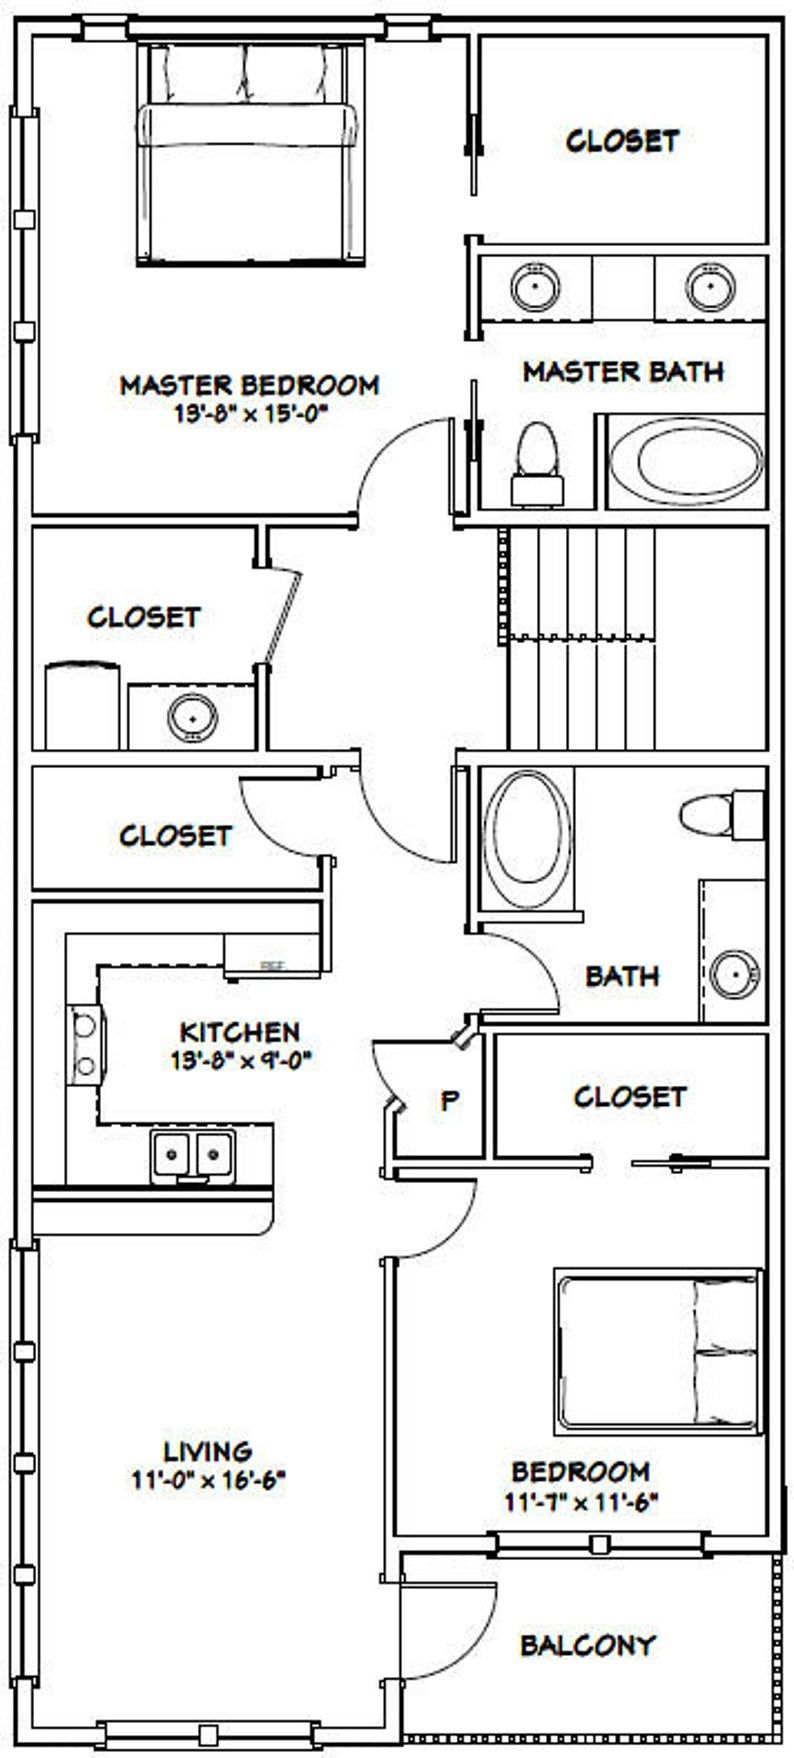 44x48 House 2Bedroom 2.5Bath 1,645 sq ft PDF